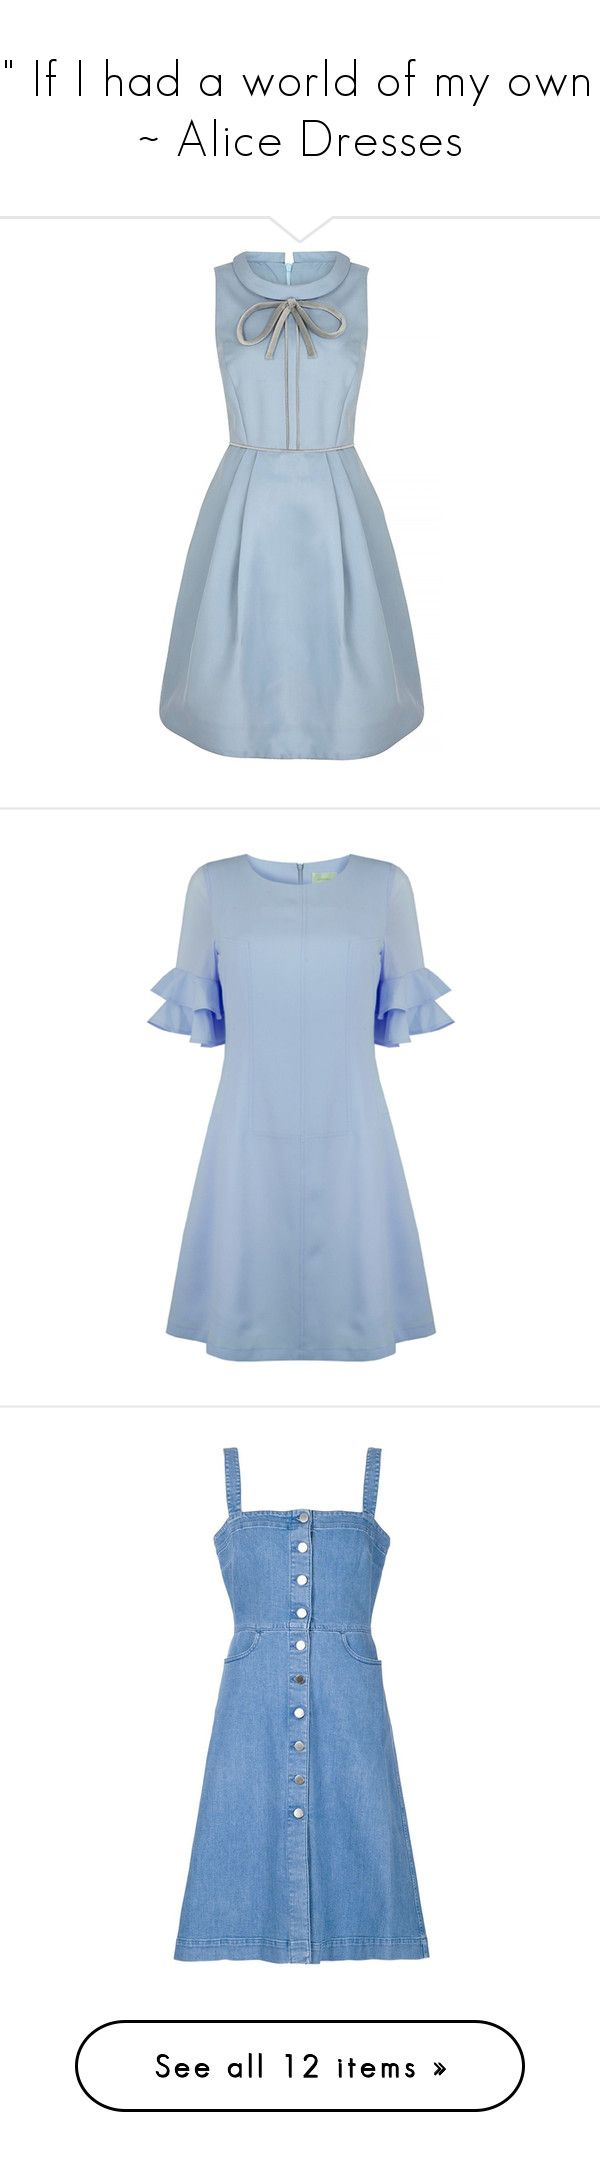 """~ "" If I had a world of my own .."" ~ Alice Dresses"" by hollyweirdx3 ❤ liked on Polyvore featuring dresses, vestidos, blue dress, silk dress, going out dresses, blue cocktail dresses, party dresses, ruffle sleeve dress, flutter-sleeve dress and frill dress"